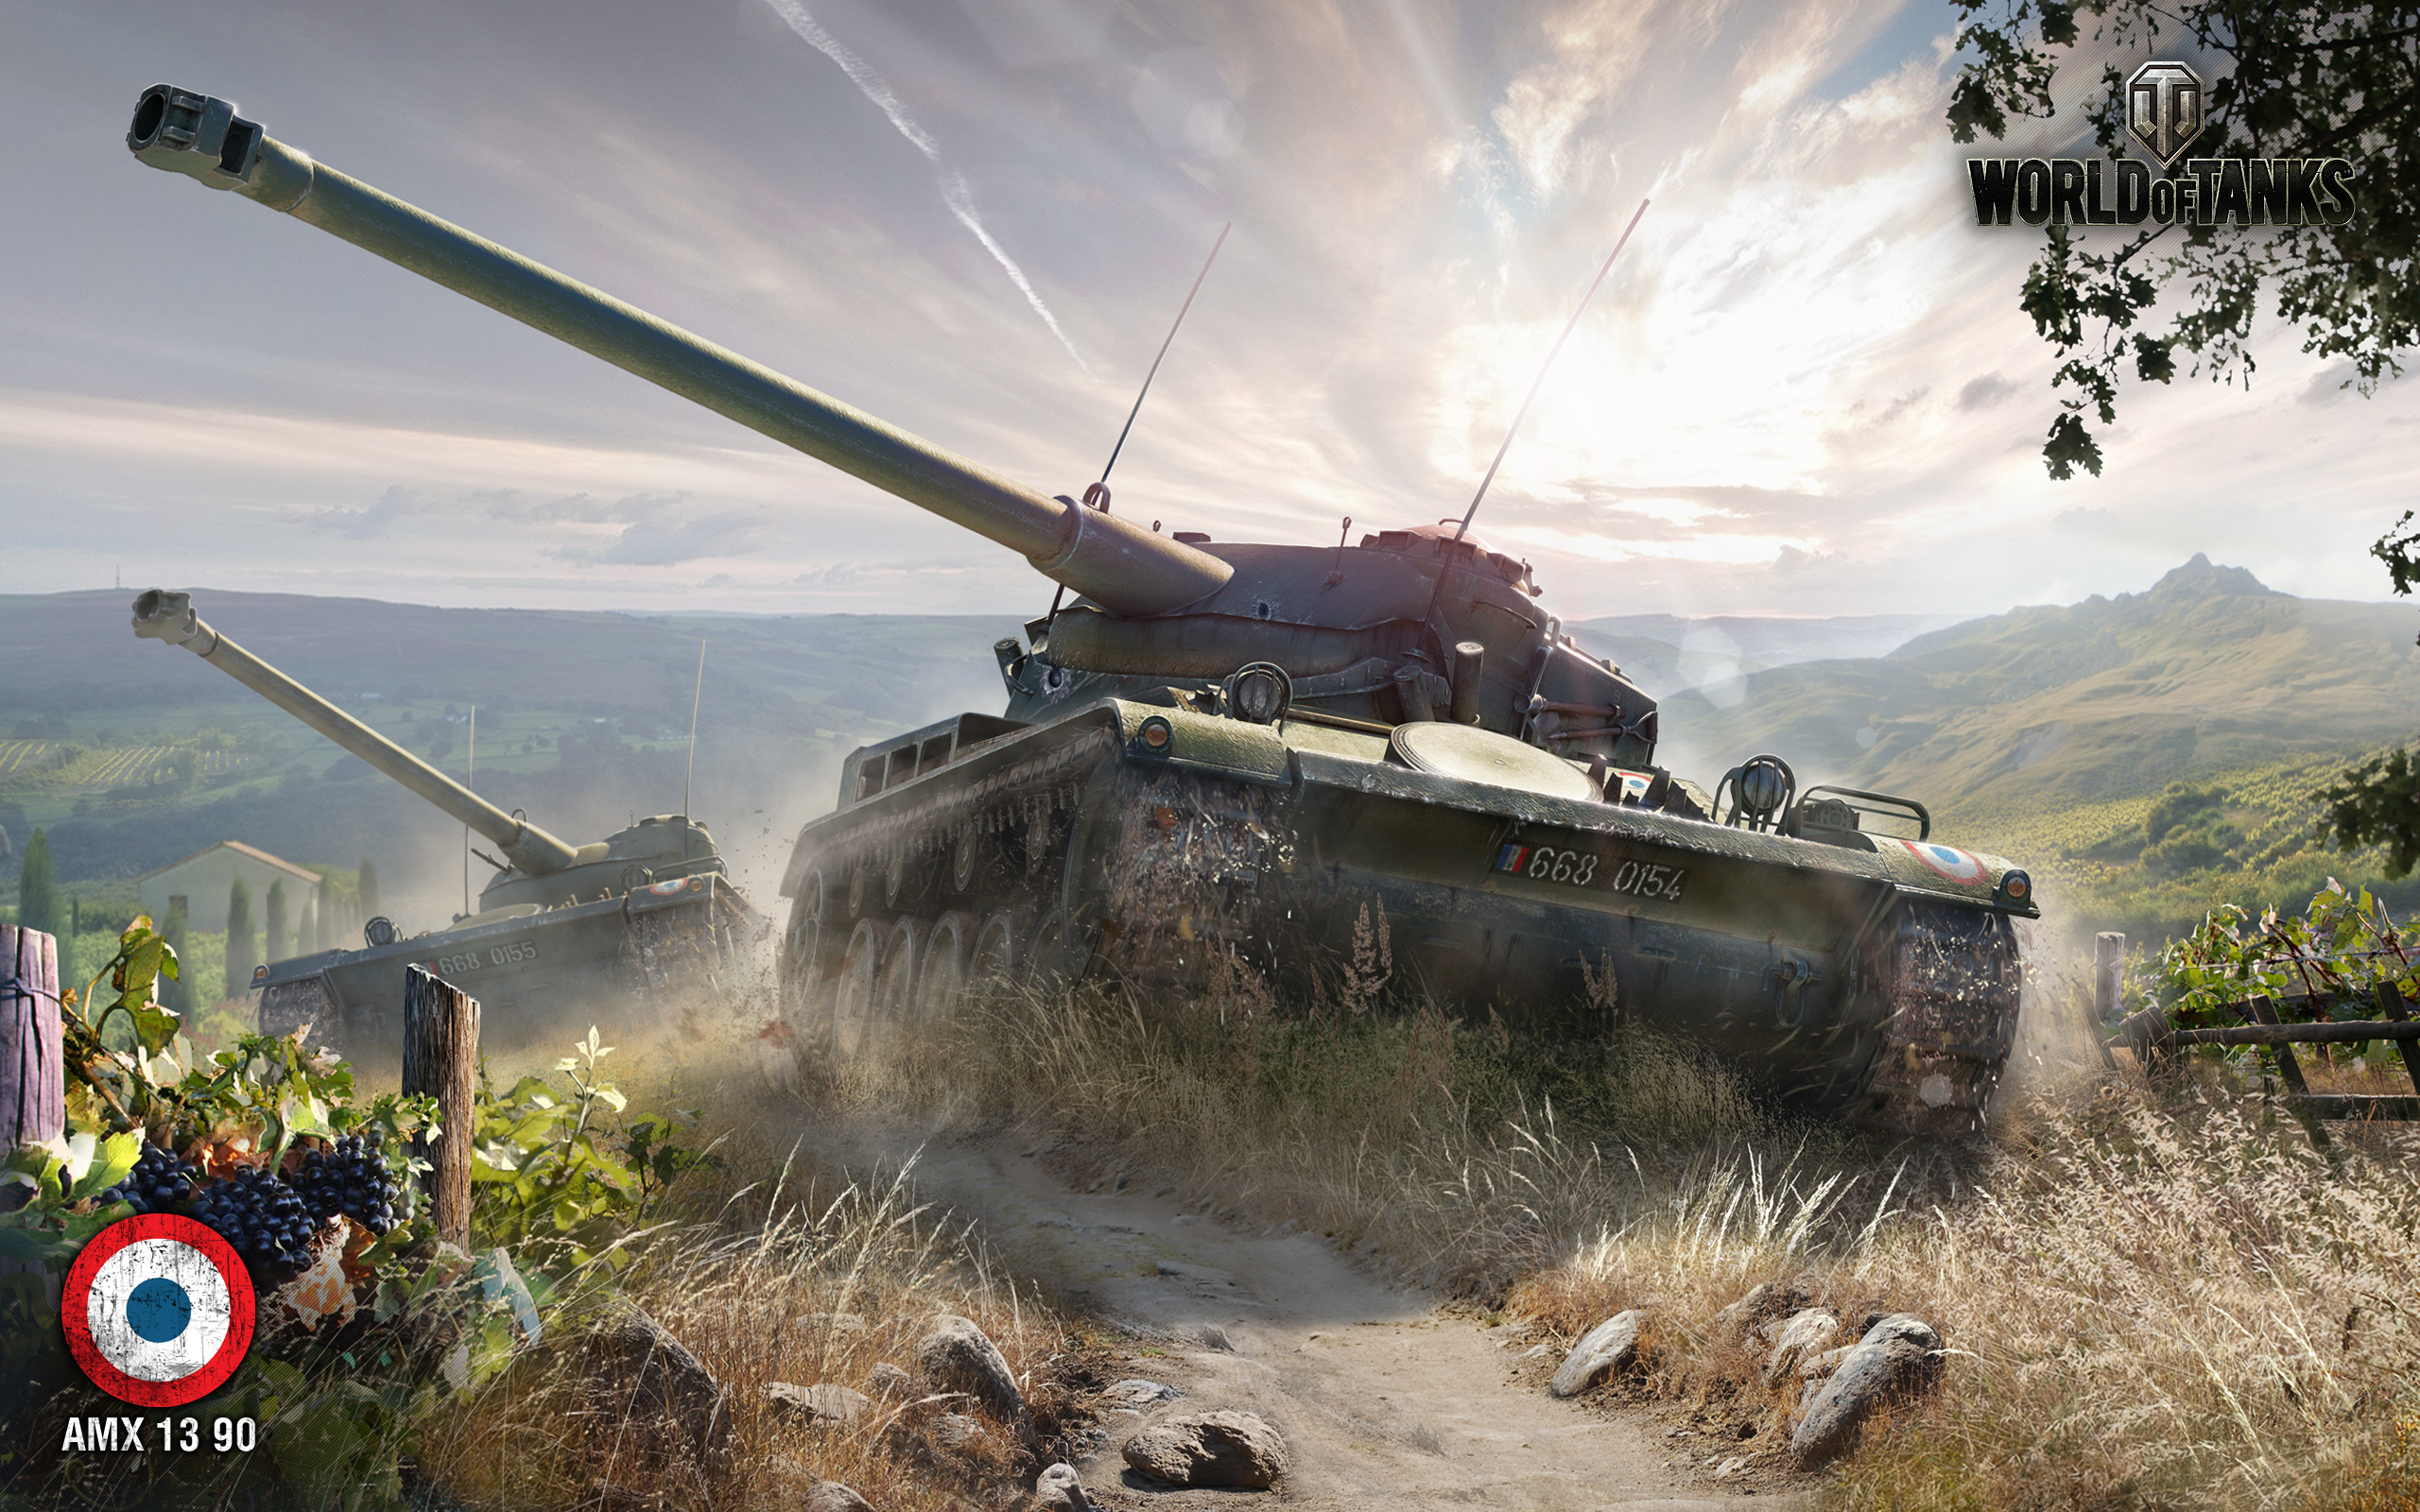 AMX 13 90 World of Tanks 1154.22 Kb